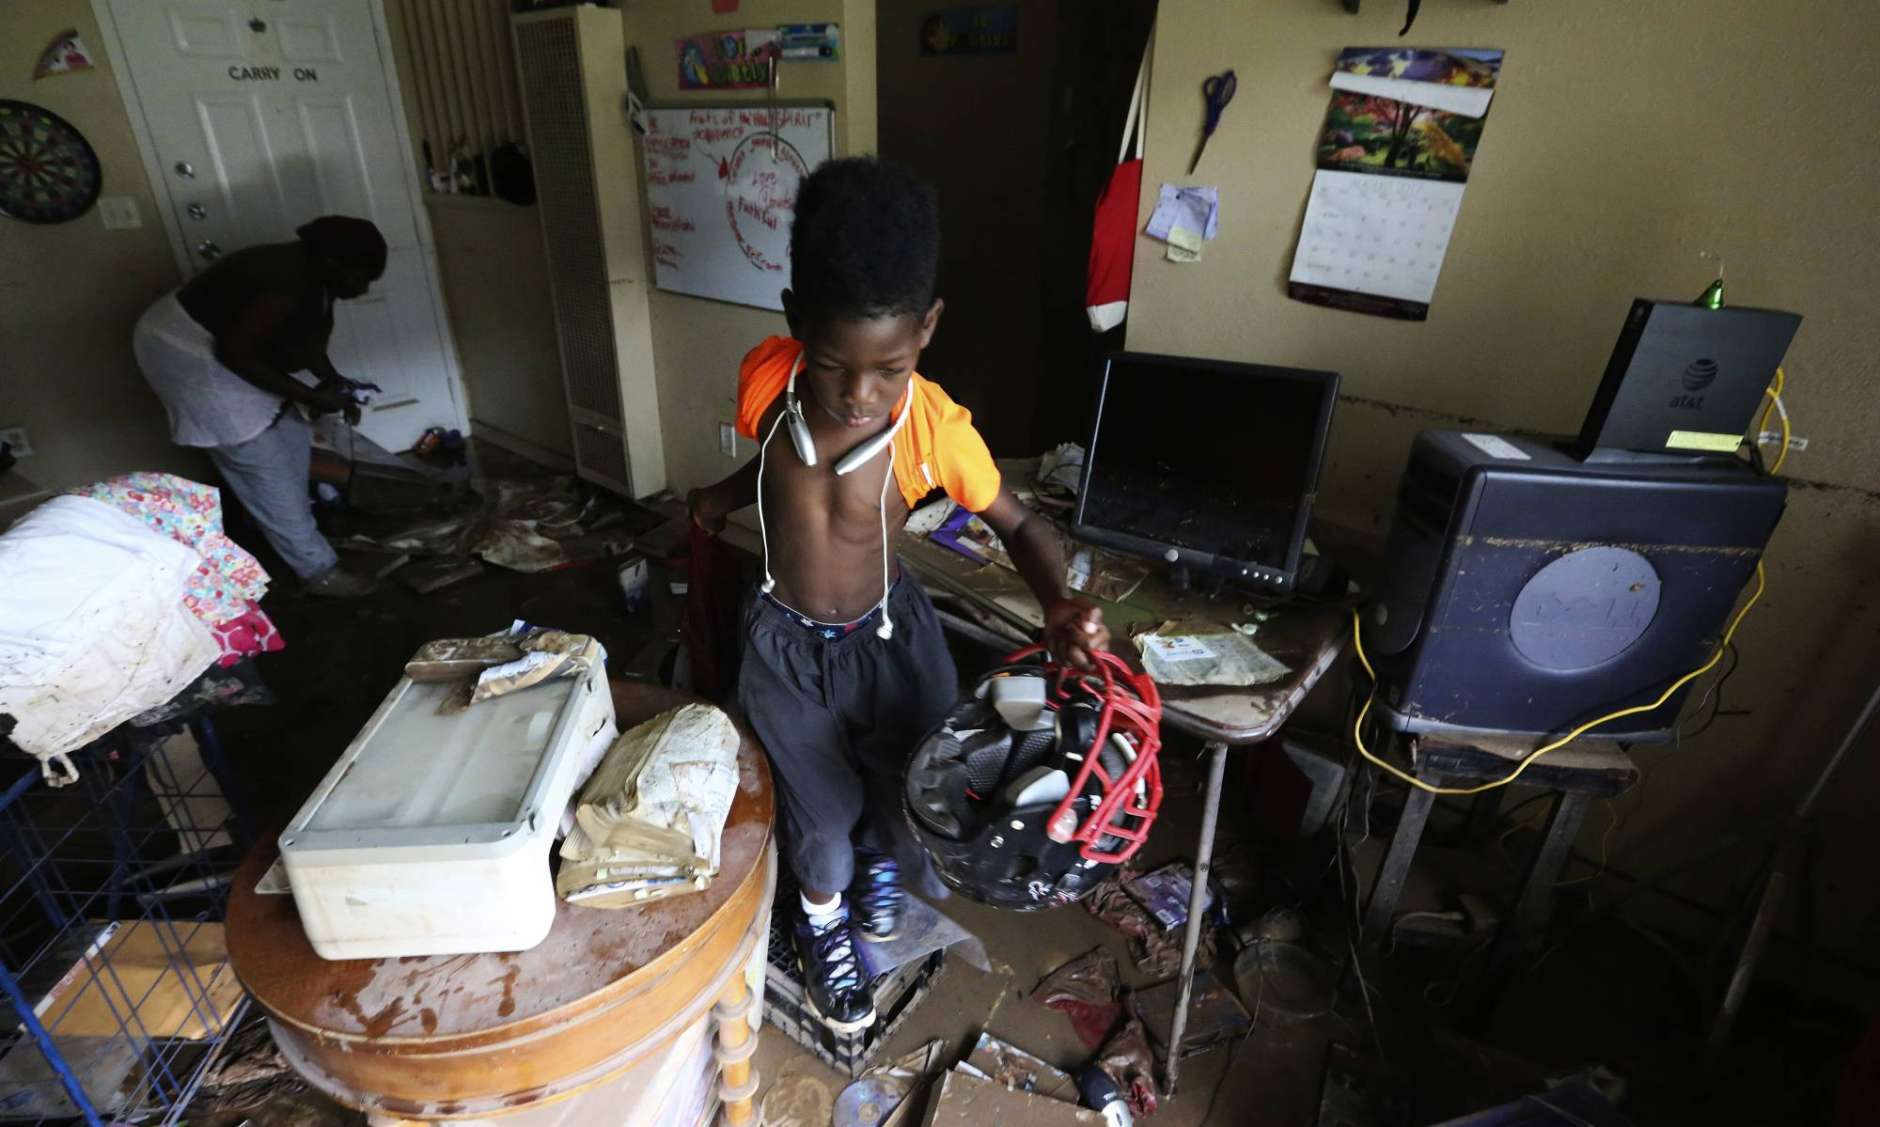 Darrington Mason, 11, right, pulls his football helmet from his flooded home where he lives with his grandmother Gillis Leho in Houston, Texas, Wednesday, Aug. 30, 2017. Leho and the her grandchildren had been planning to evacuate by car but had to quickly escape through a window of their home as floodwaters brought on by Tropical Storm Harvey rushed in from nearby Buffalo Bayou. (AP Photo/LM Otero)